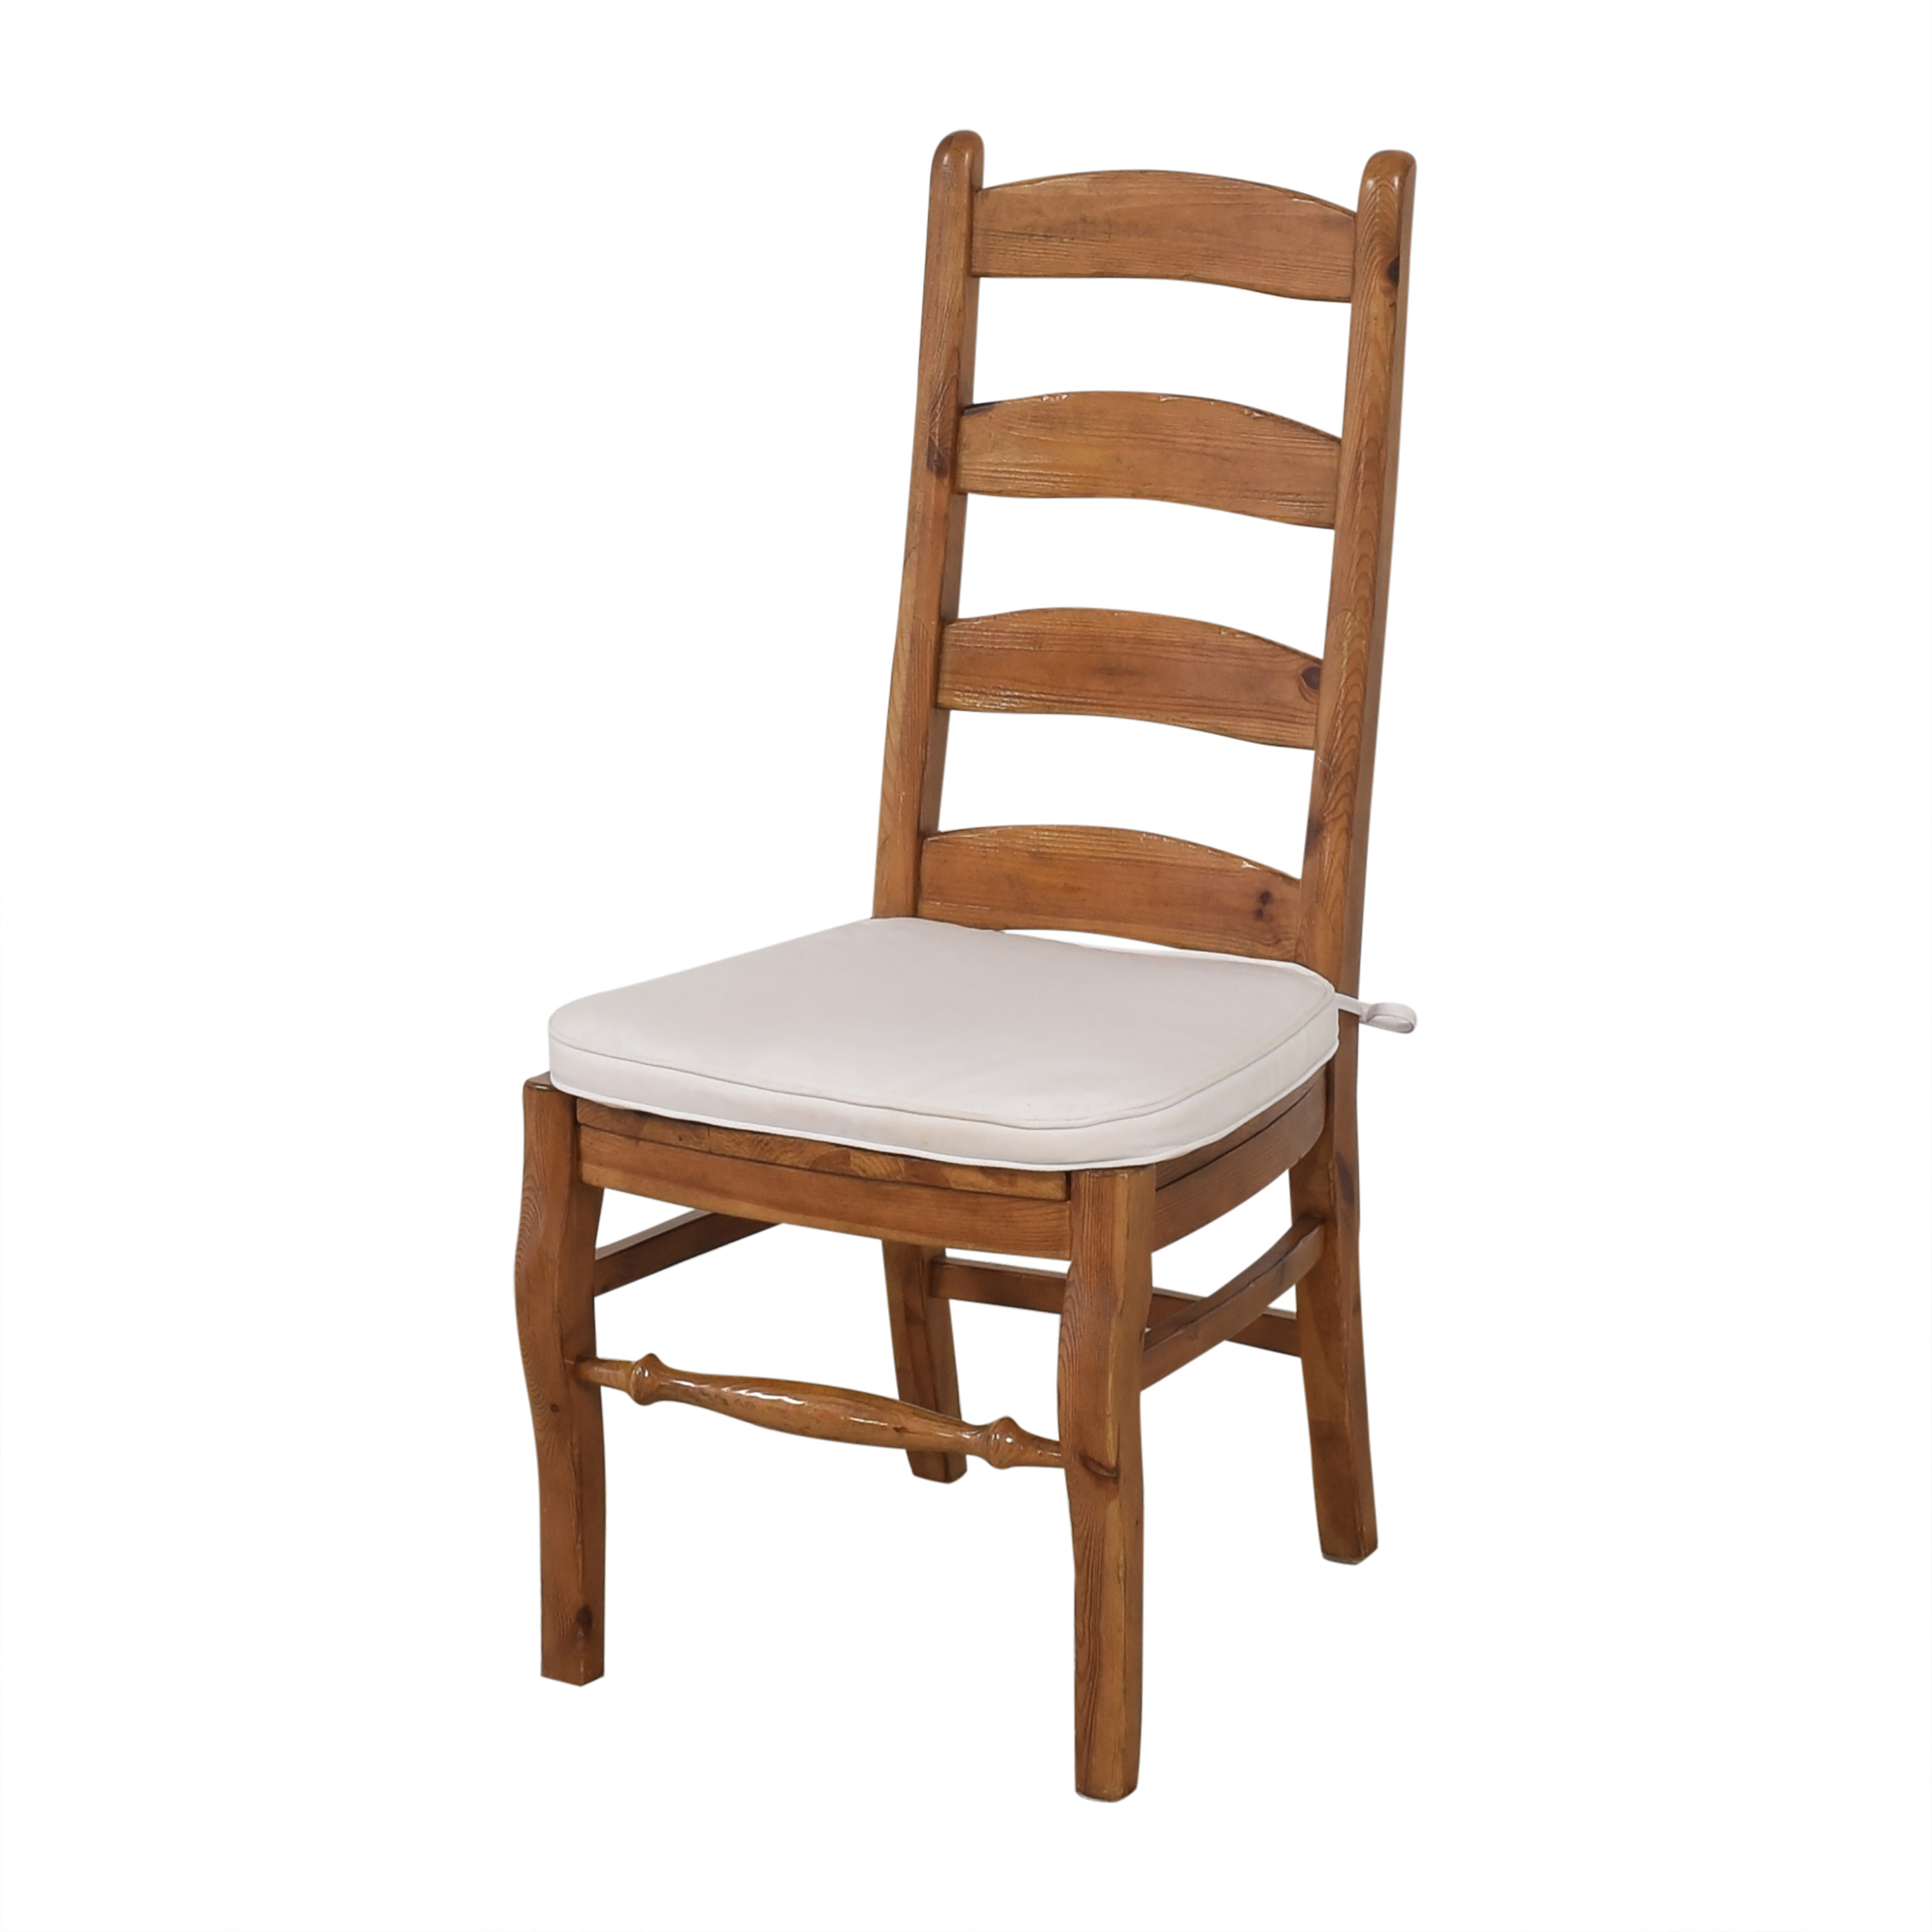 Pottery Barn Pottery Barn Wynn Ladder Back Dining Chairs Chairs